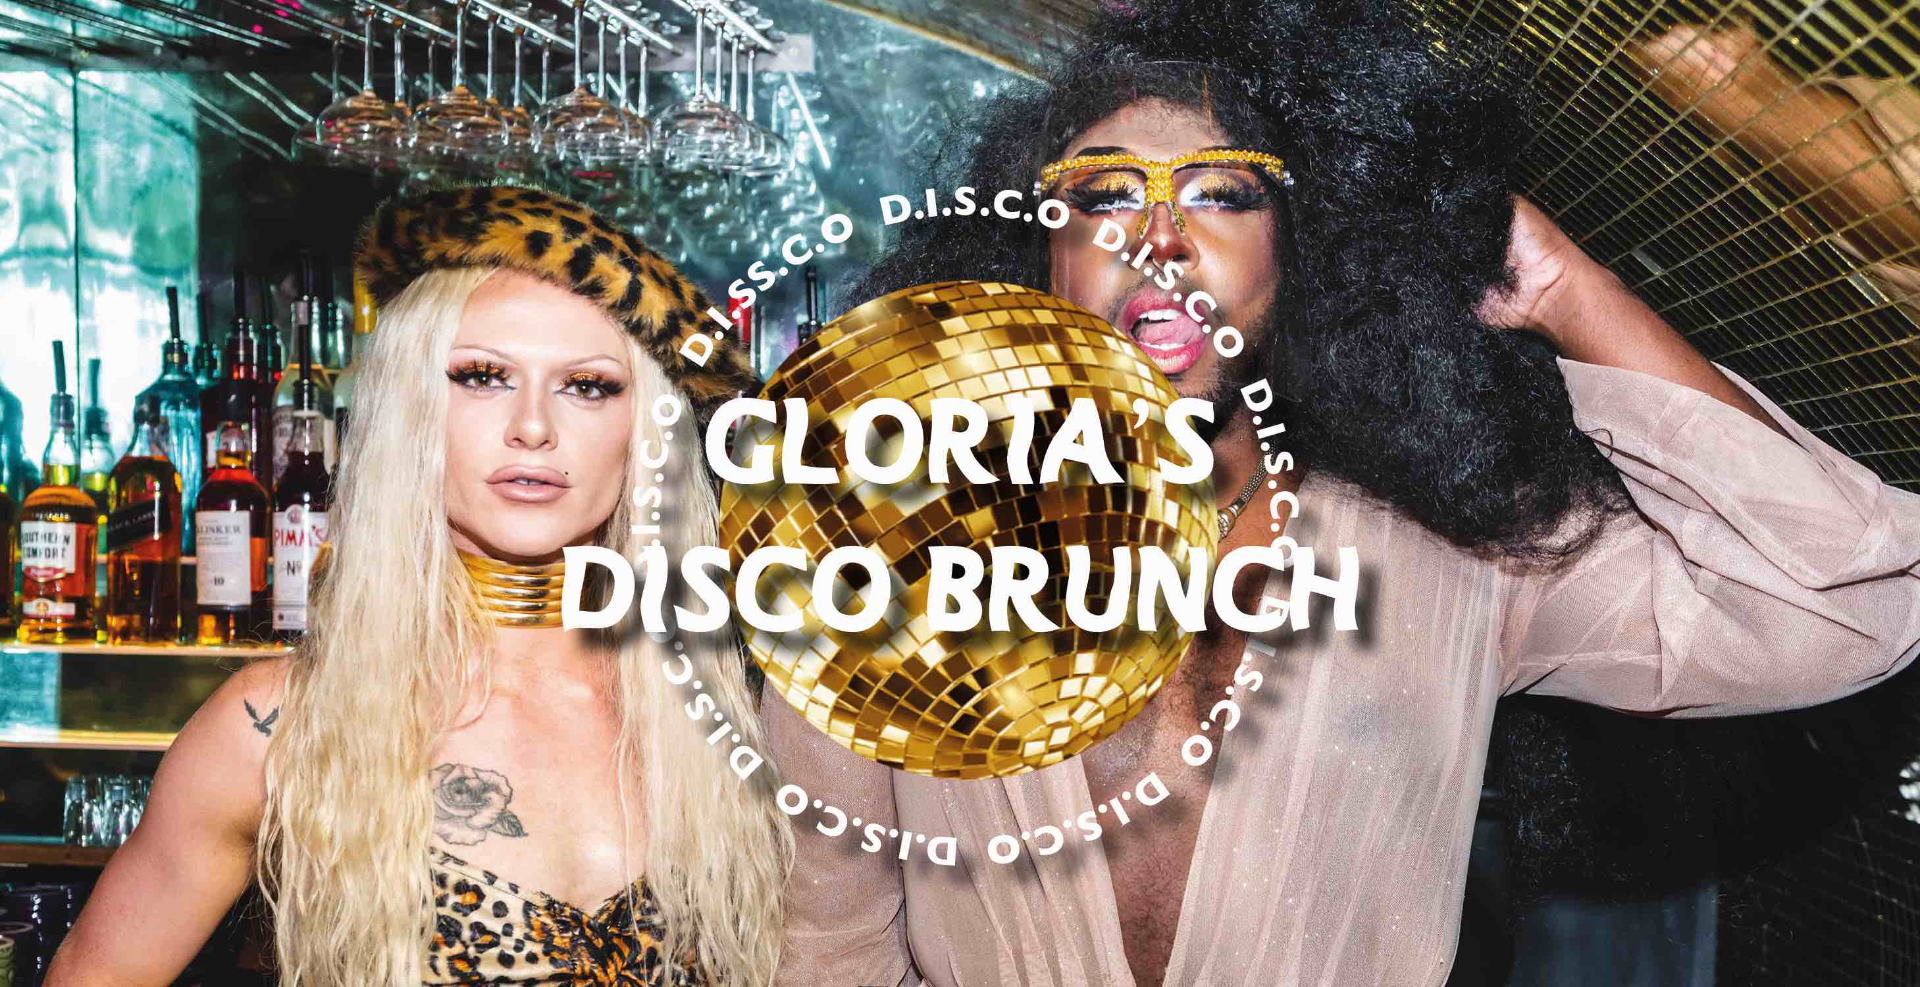 Gloria's Disco Brunch